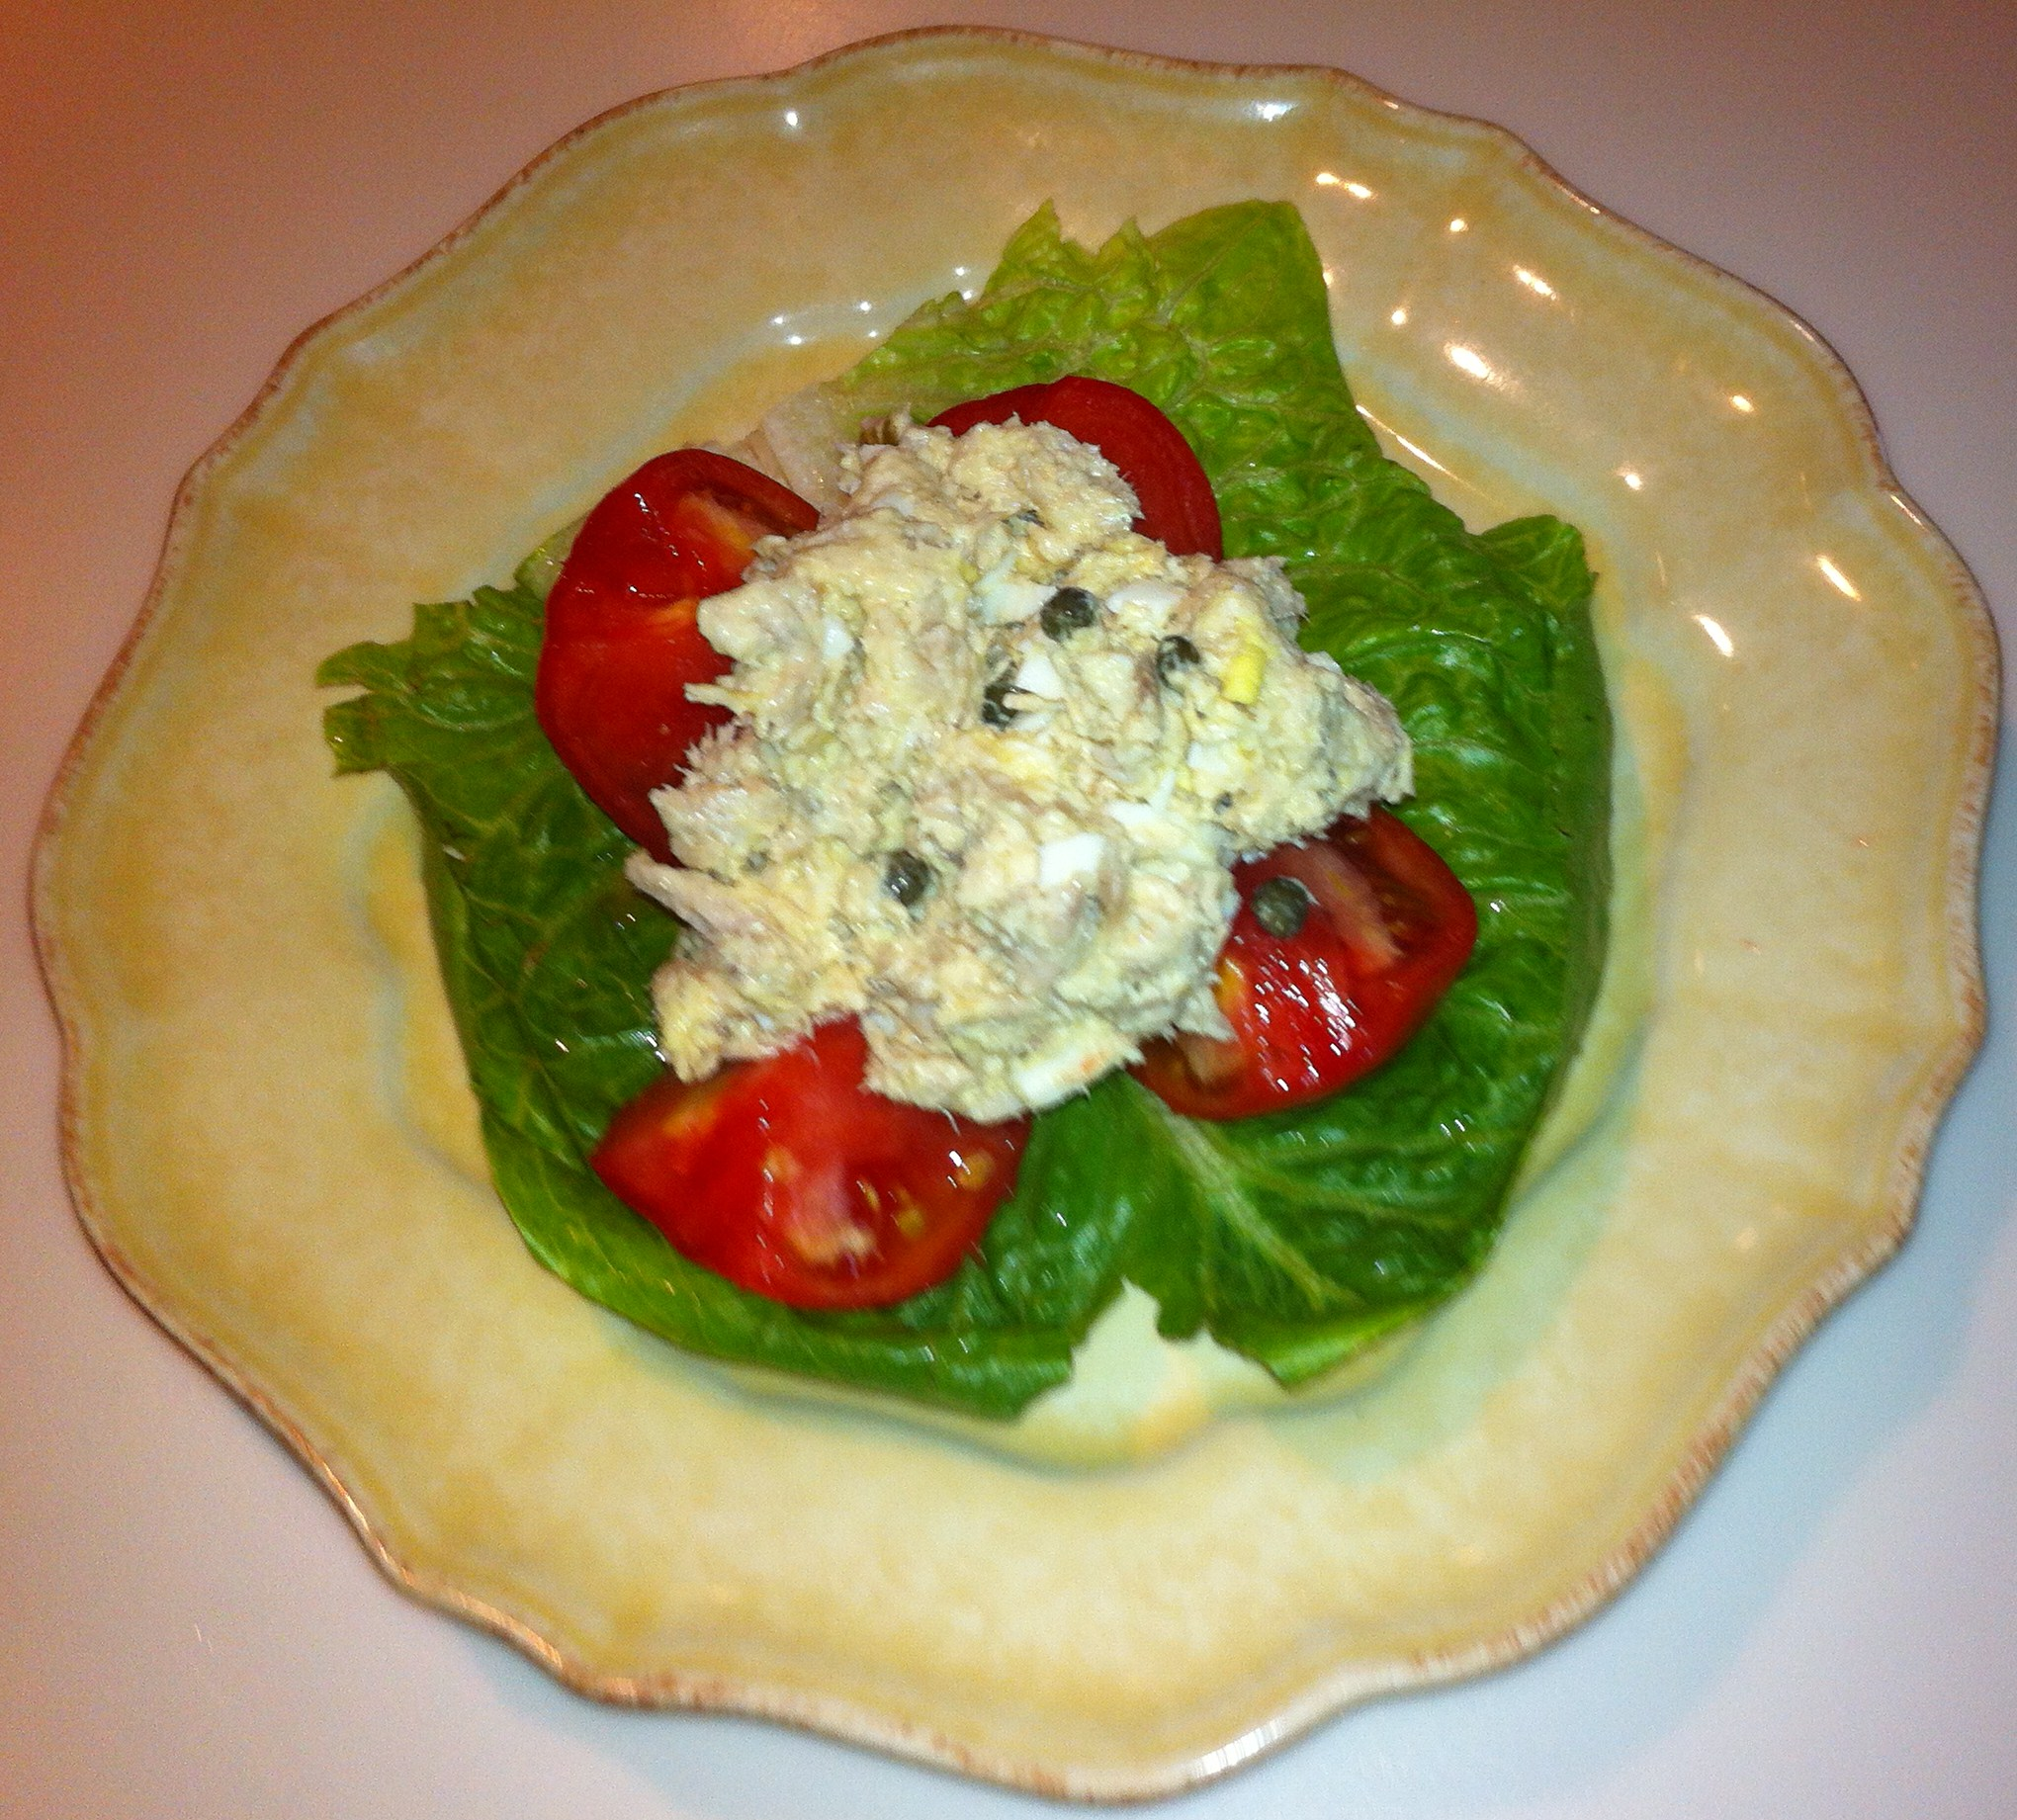 Recipes Course Salad Meat and Seafood RT's Tuna Fish Salad